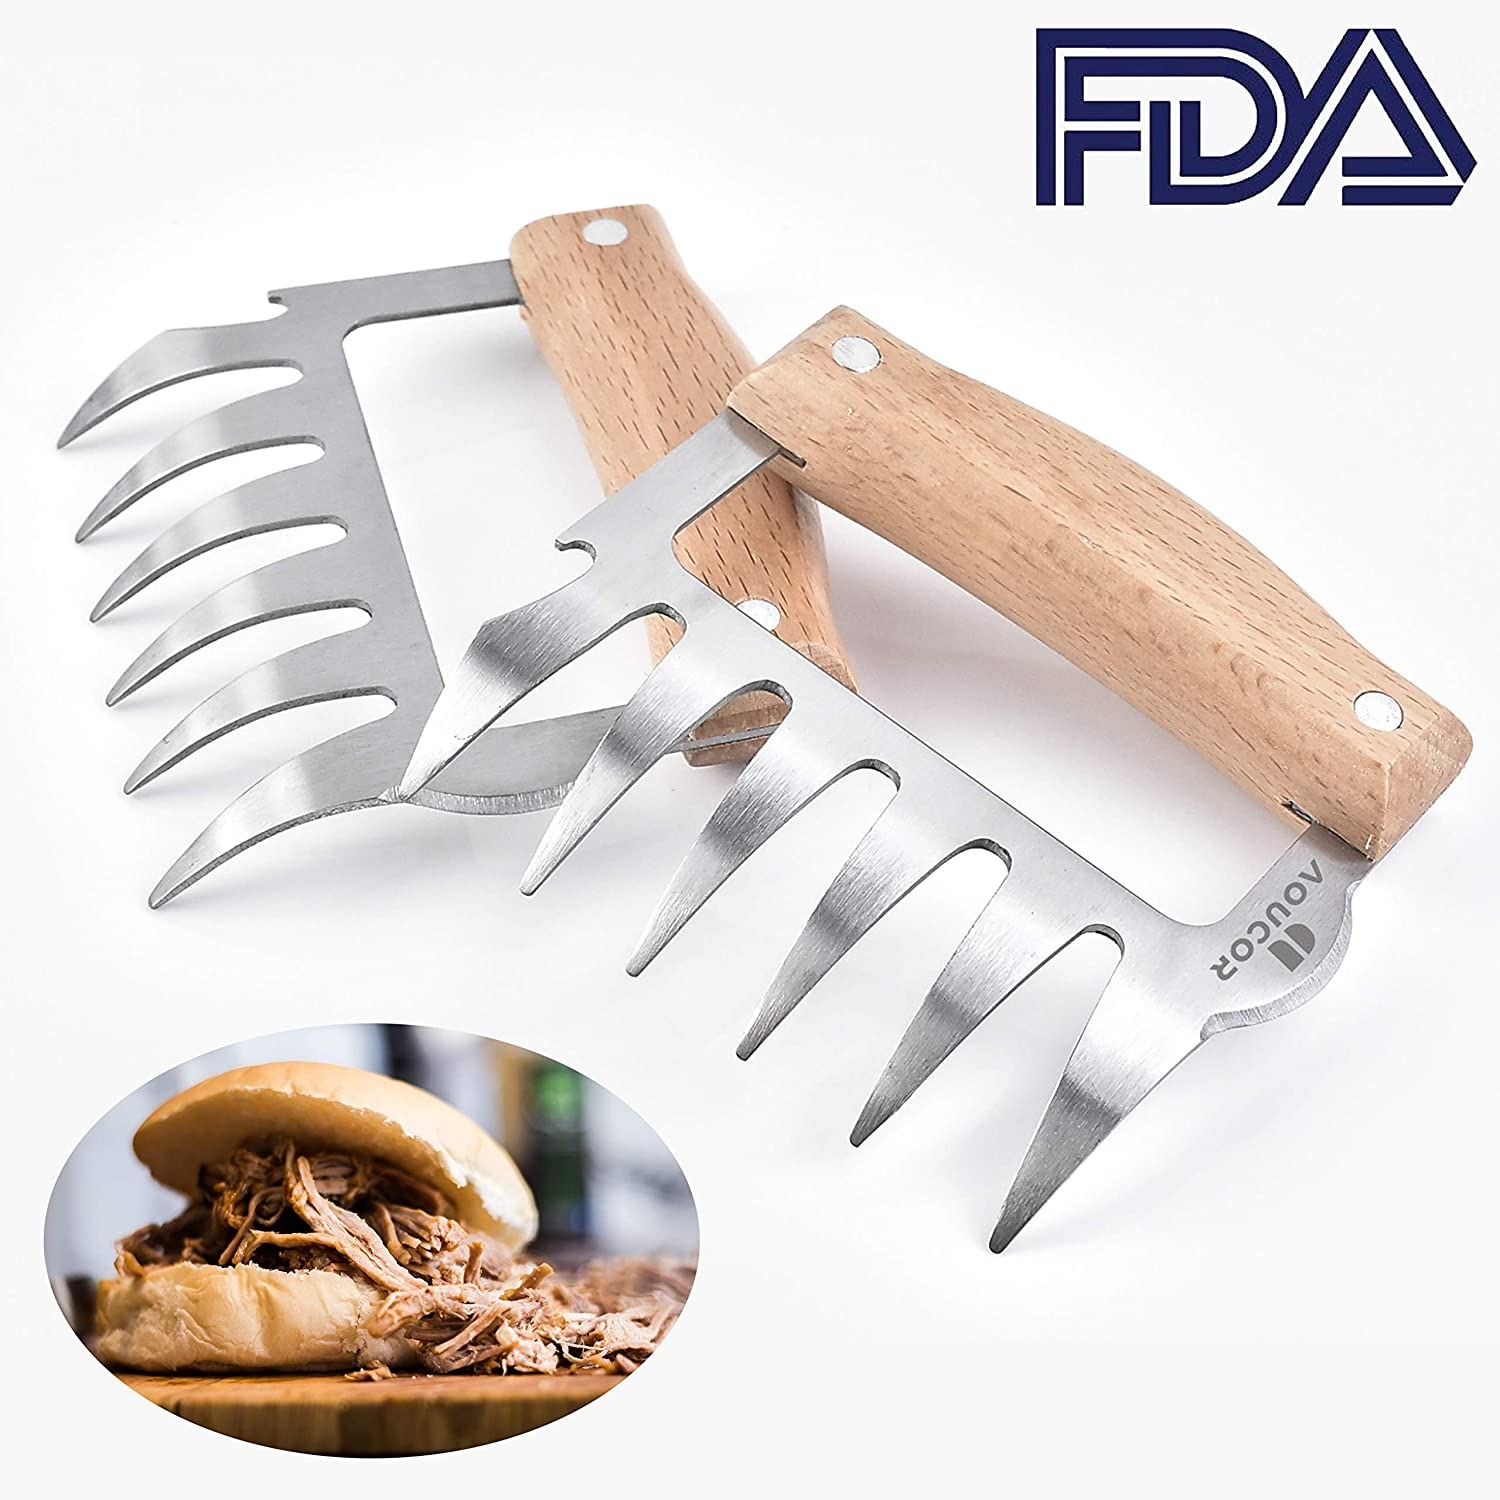 Aoucor Meat Claws Stainless Steel Meat Shredder Wood Handle, BBQ Tool Shredding, Pulling, Handing, Lifting & Serving Pork, Turkey, Chicken, Brisket - Set of 2